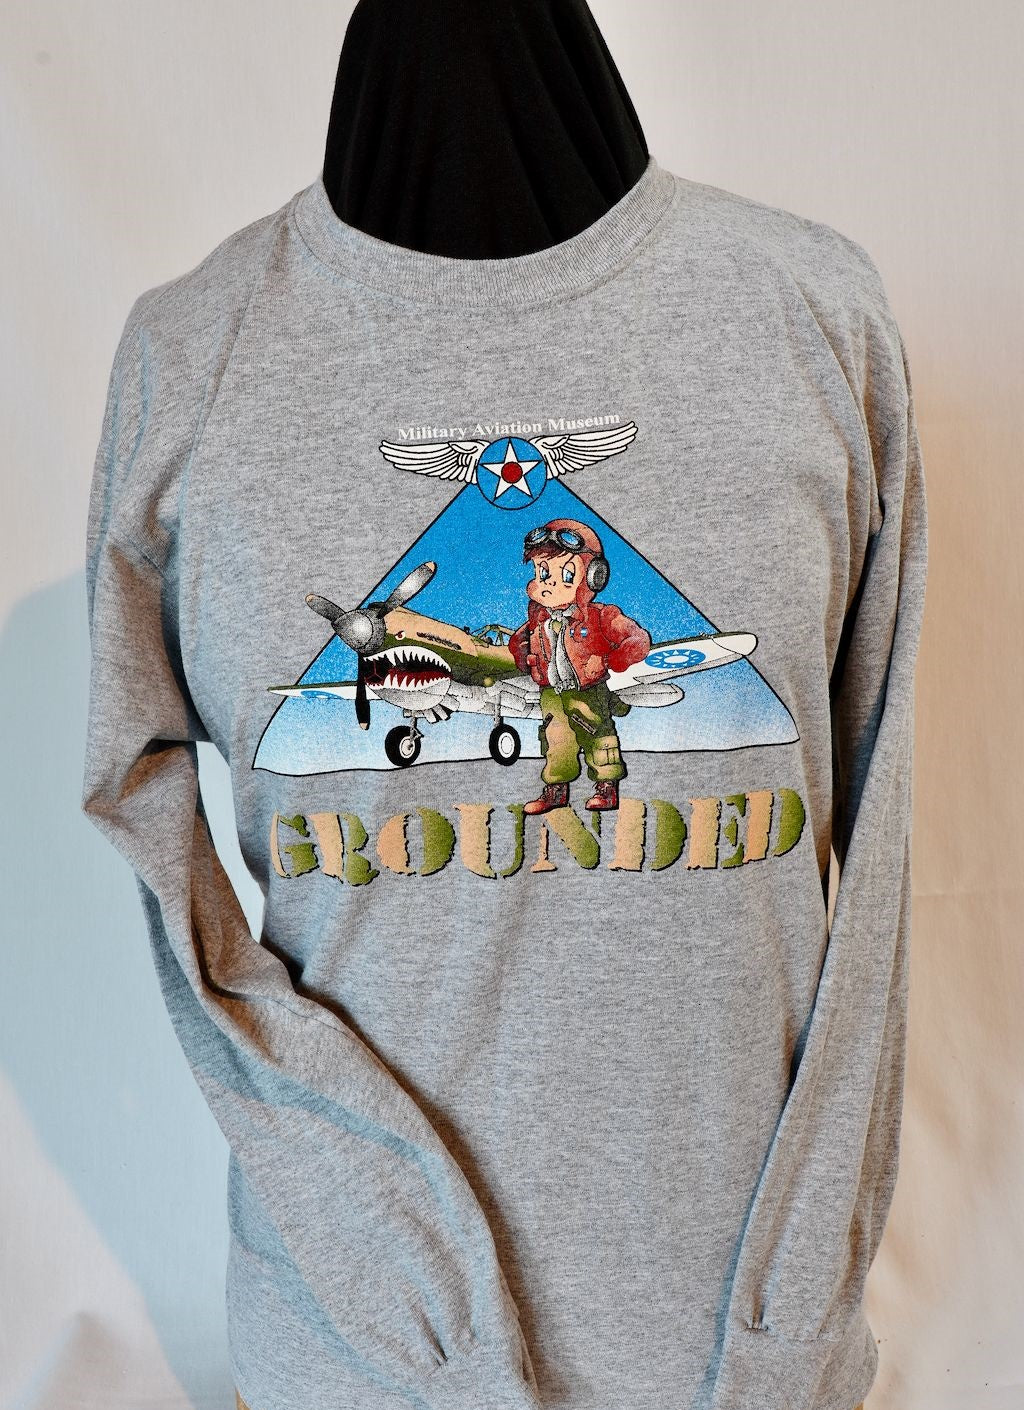 Youth Grounded Long Sleeve Tee